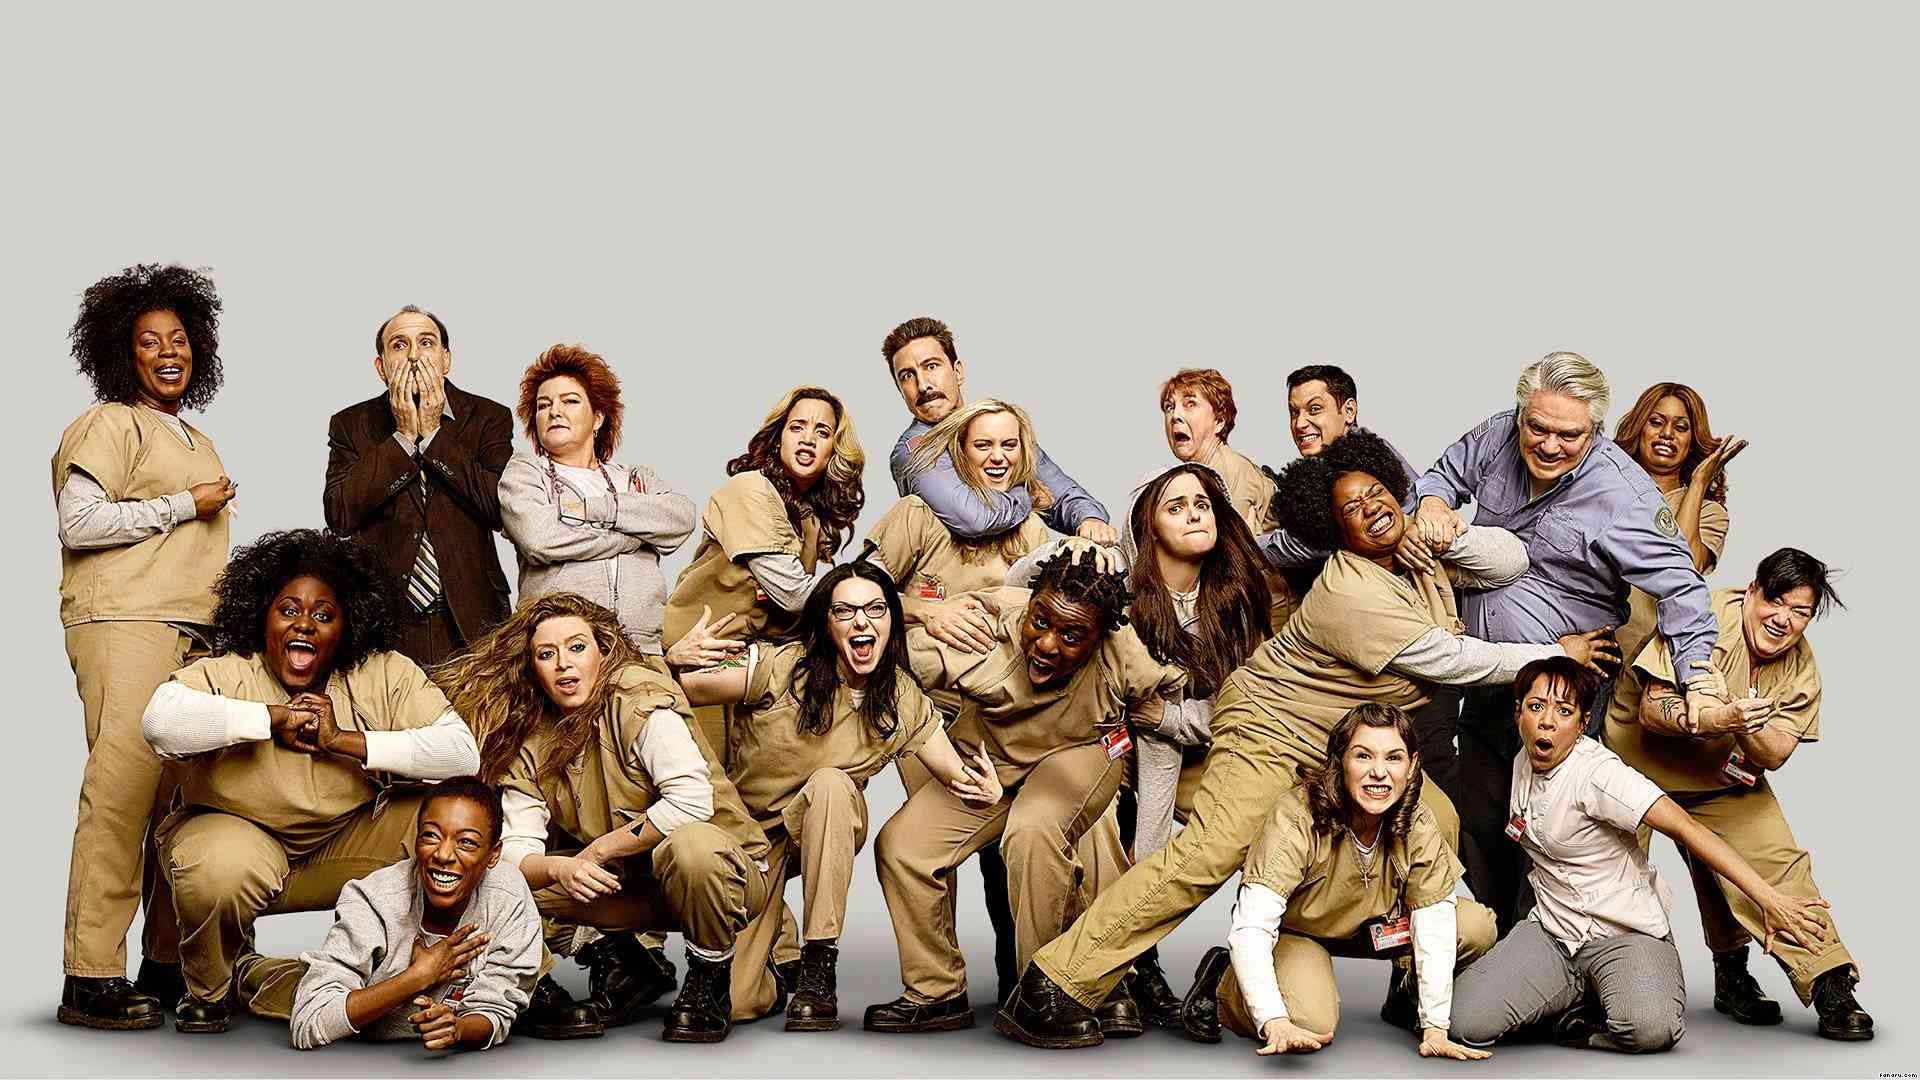 Orange Is The New Black - Cast 1-4 season